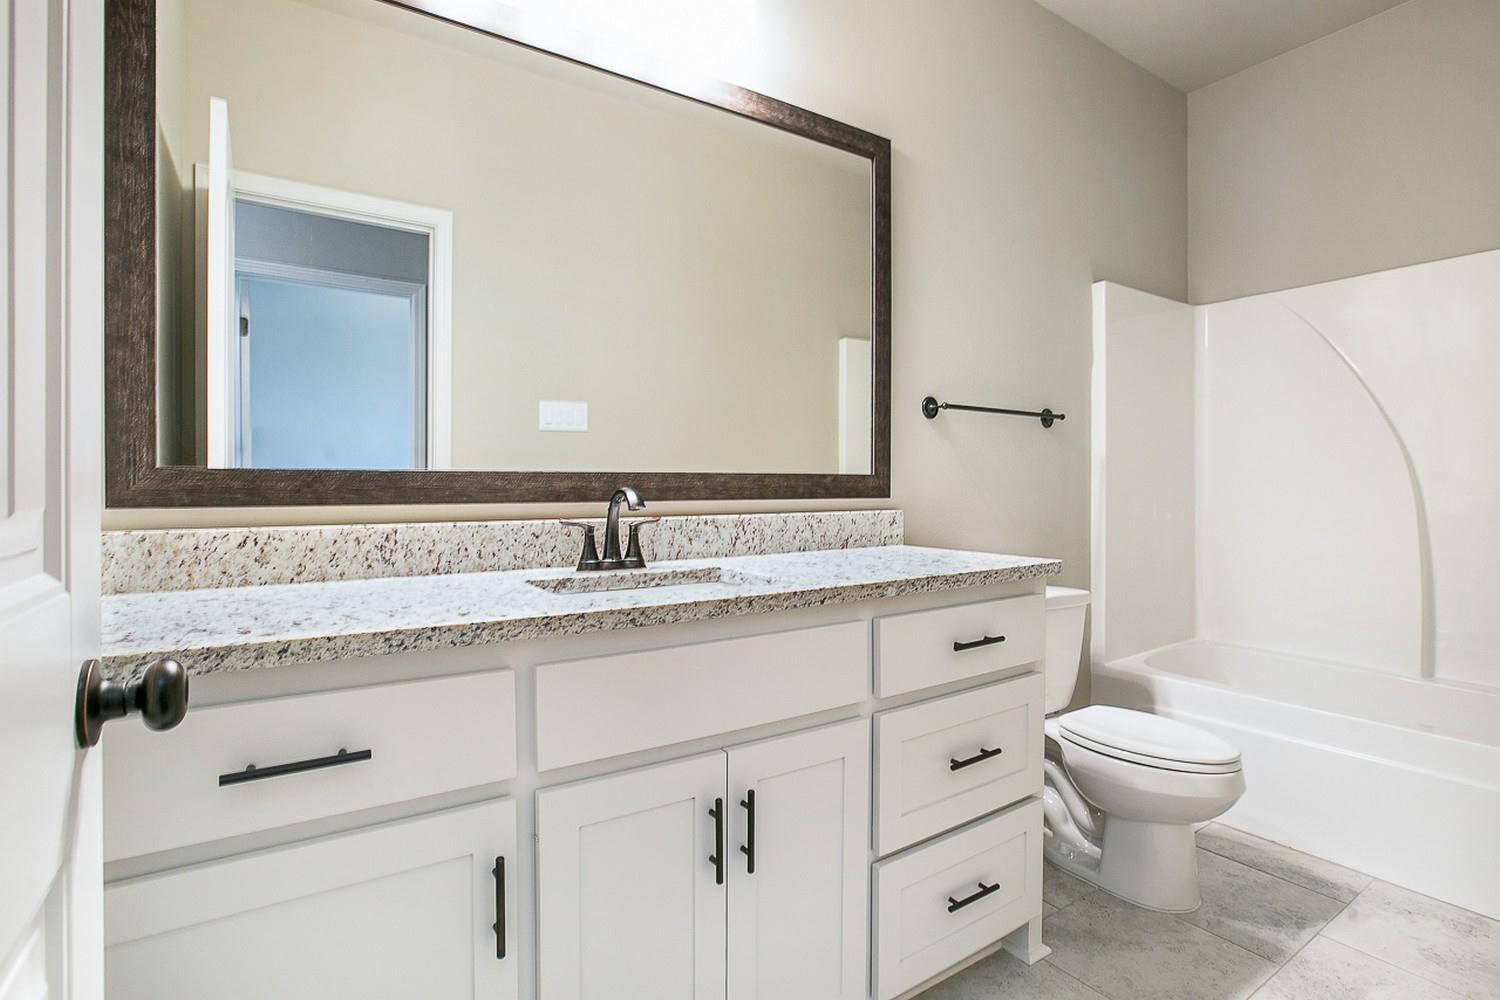 Bathroom featured in the Hudson I By Willie & Willie  in Baton Rouge, LA